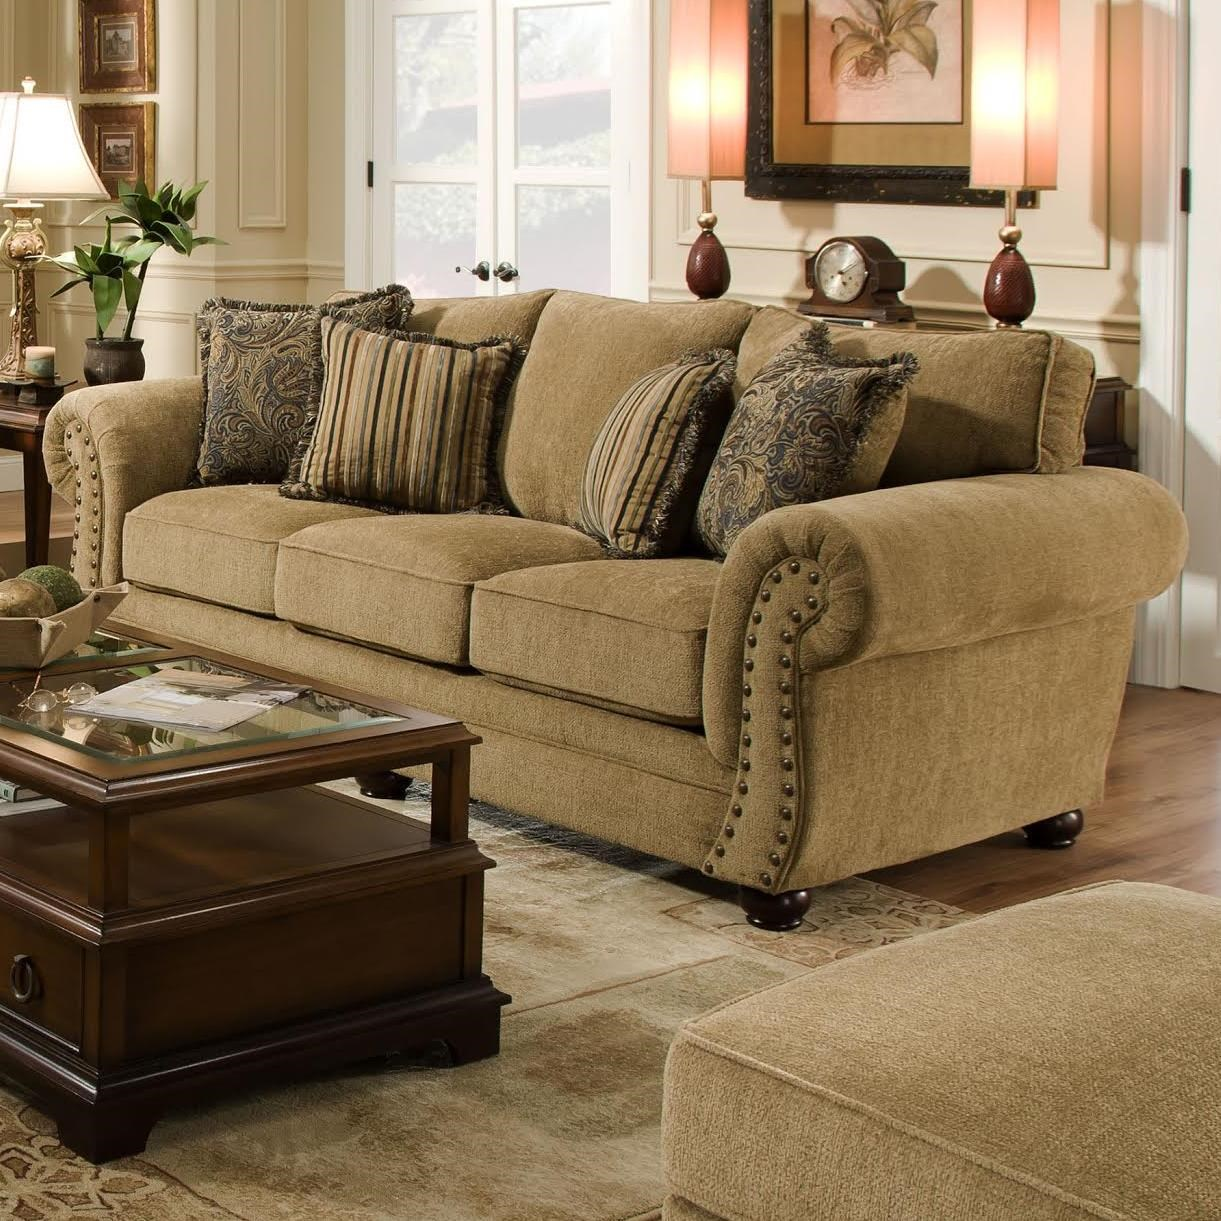 simmons upholstery traditional sofa with rolled arms and nailhead trim dunk u0026 bright furniture sofa - Nailhead Sofa